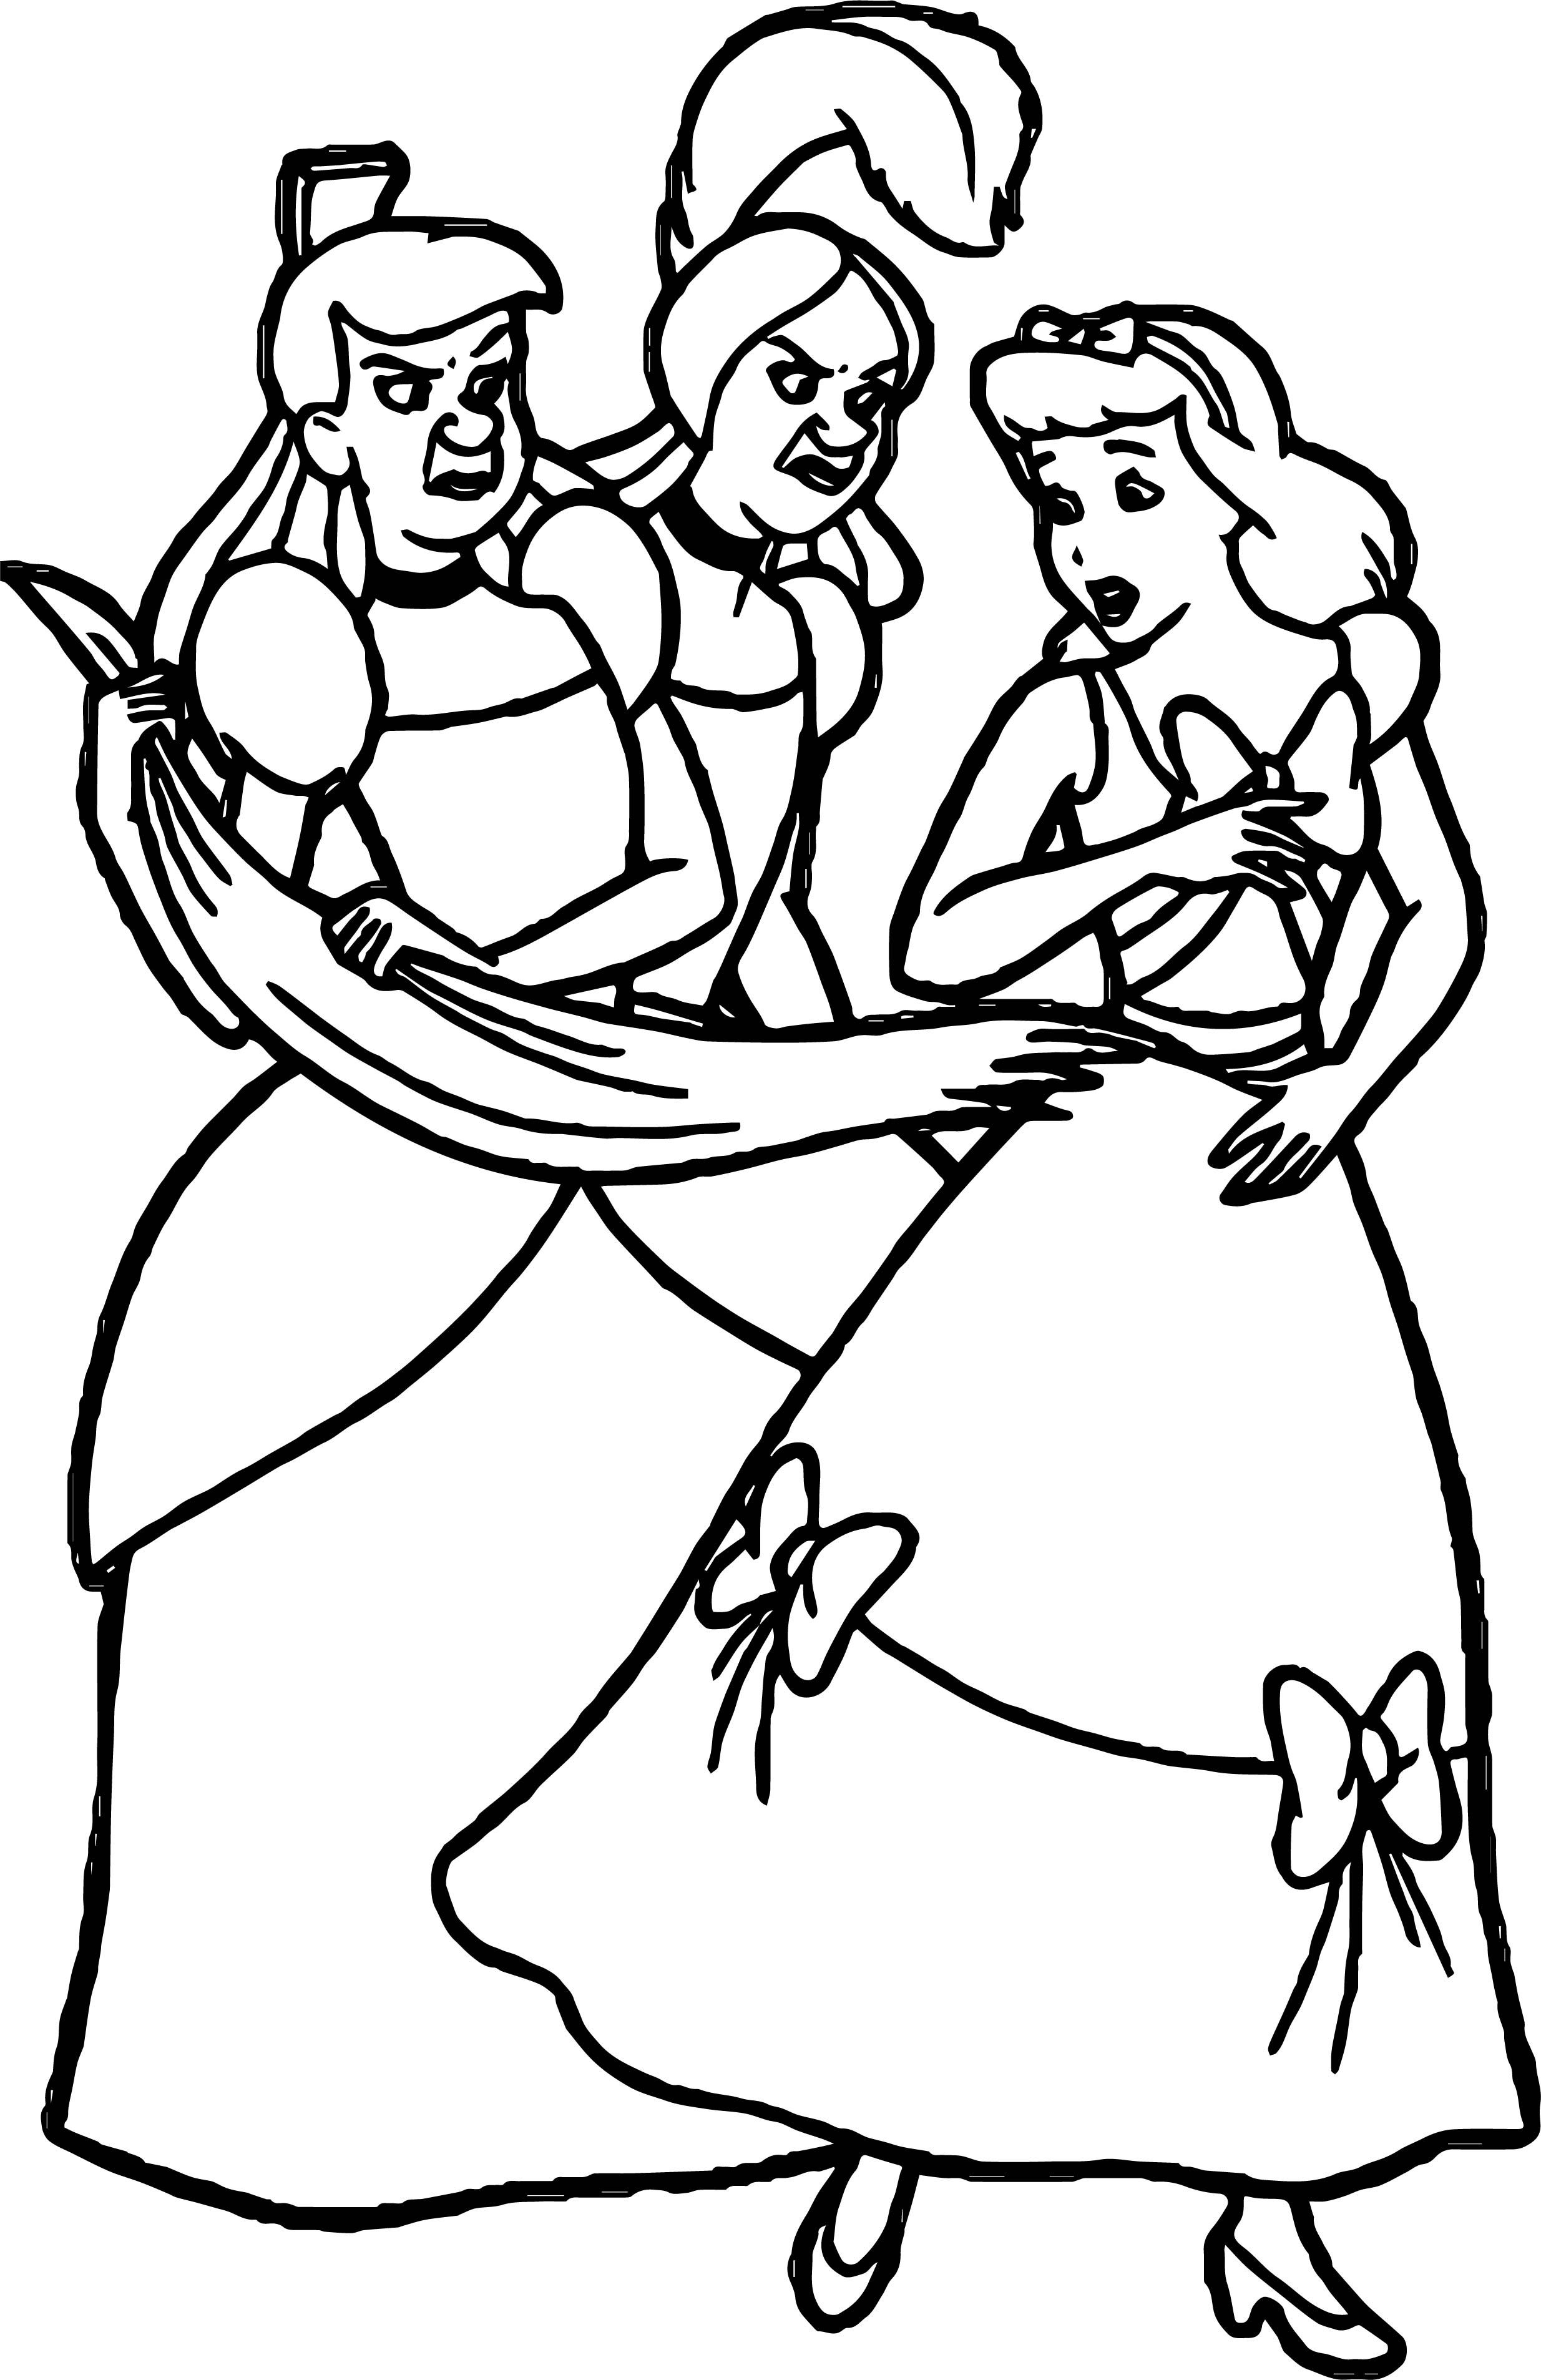 Awesome Disney Lady Tremaine Anastasia Drizella And Lucifer Coloring Page Coloring Pages Anastasia And Drizella Disney Ladies [ 3813 x 2469 Pixel ]